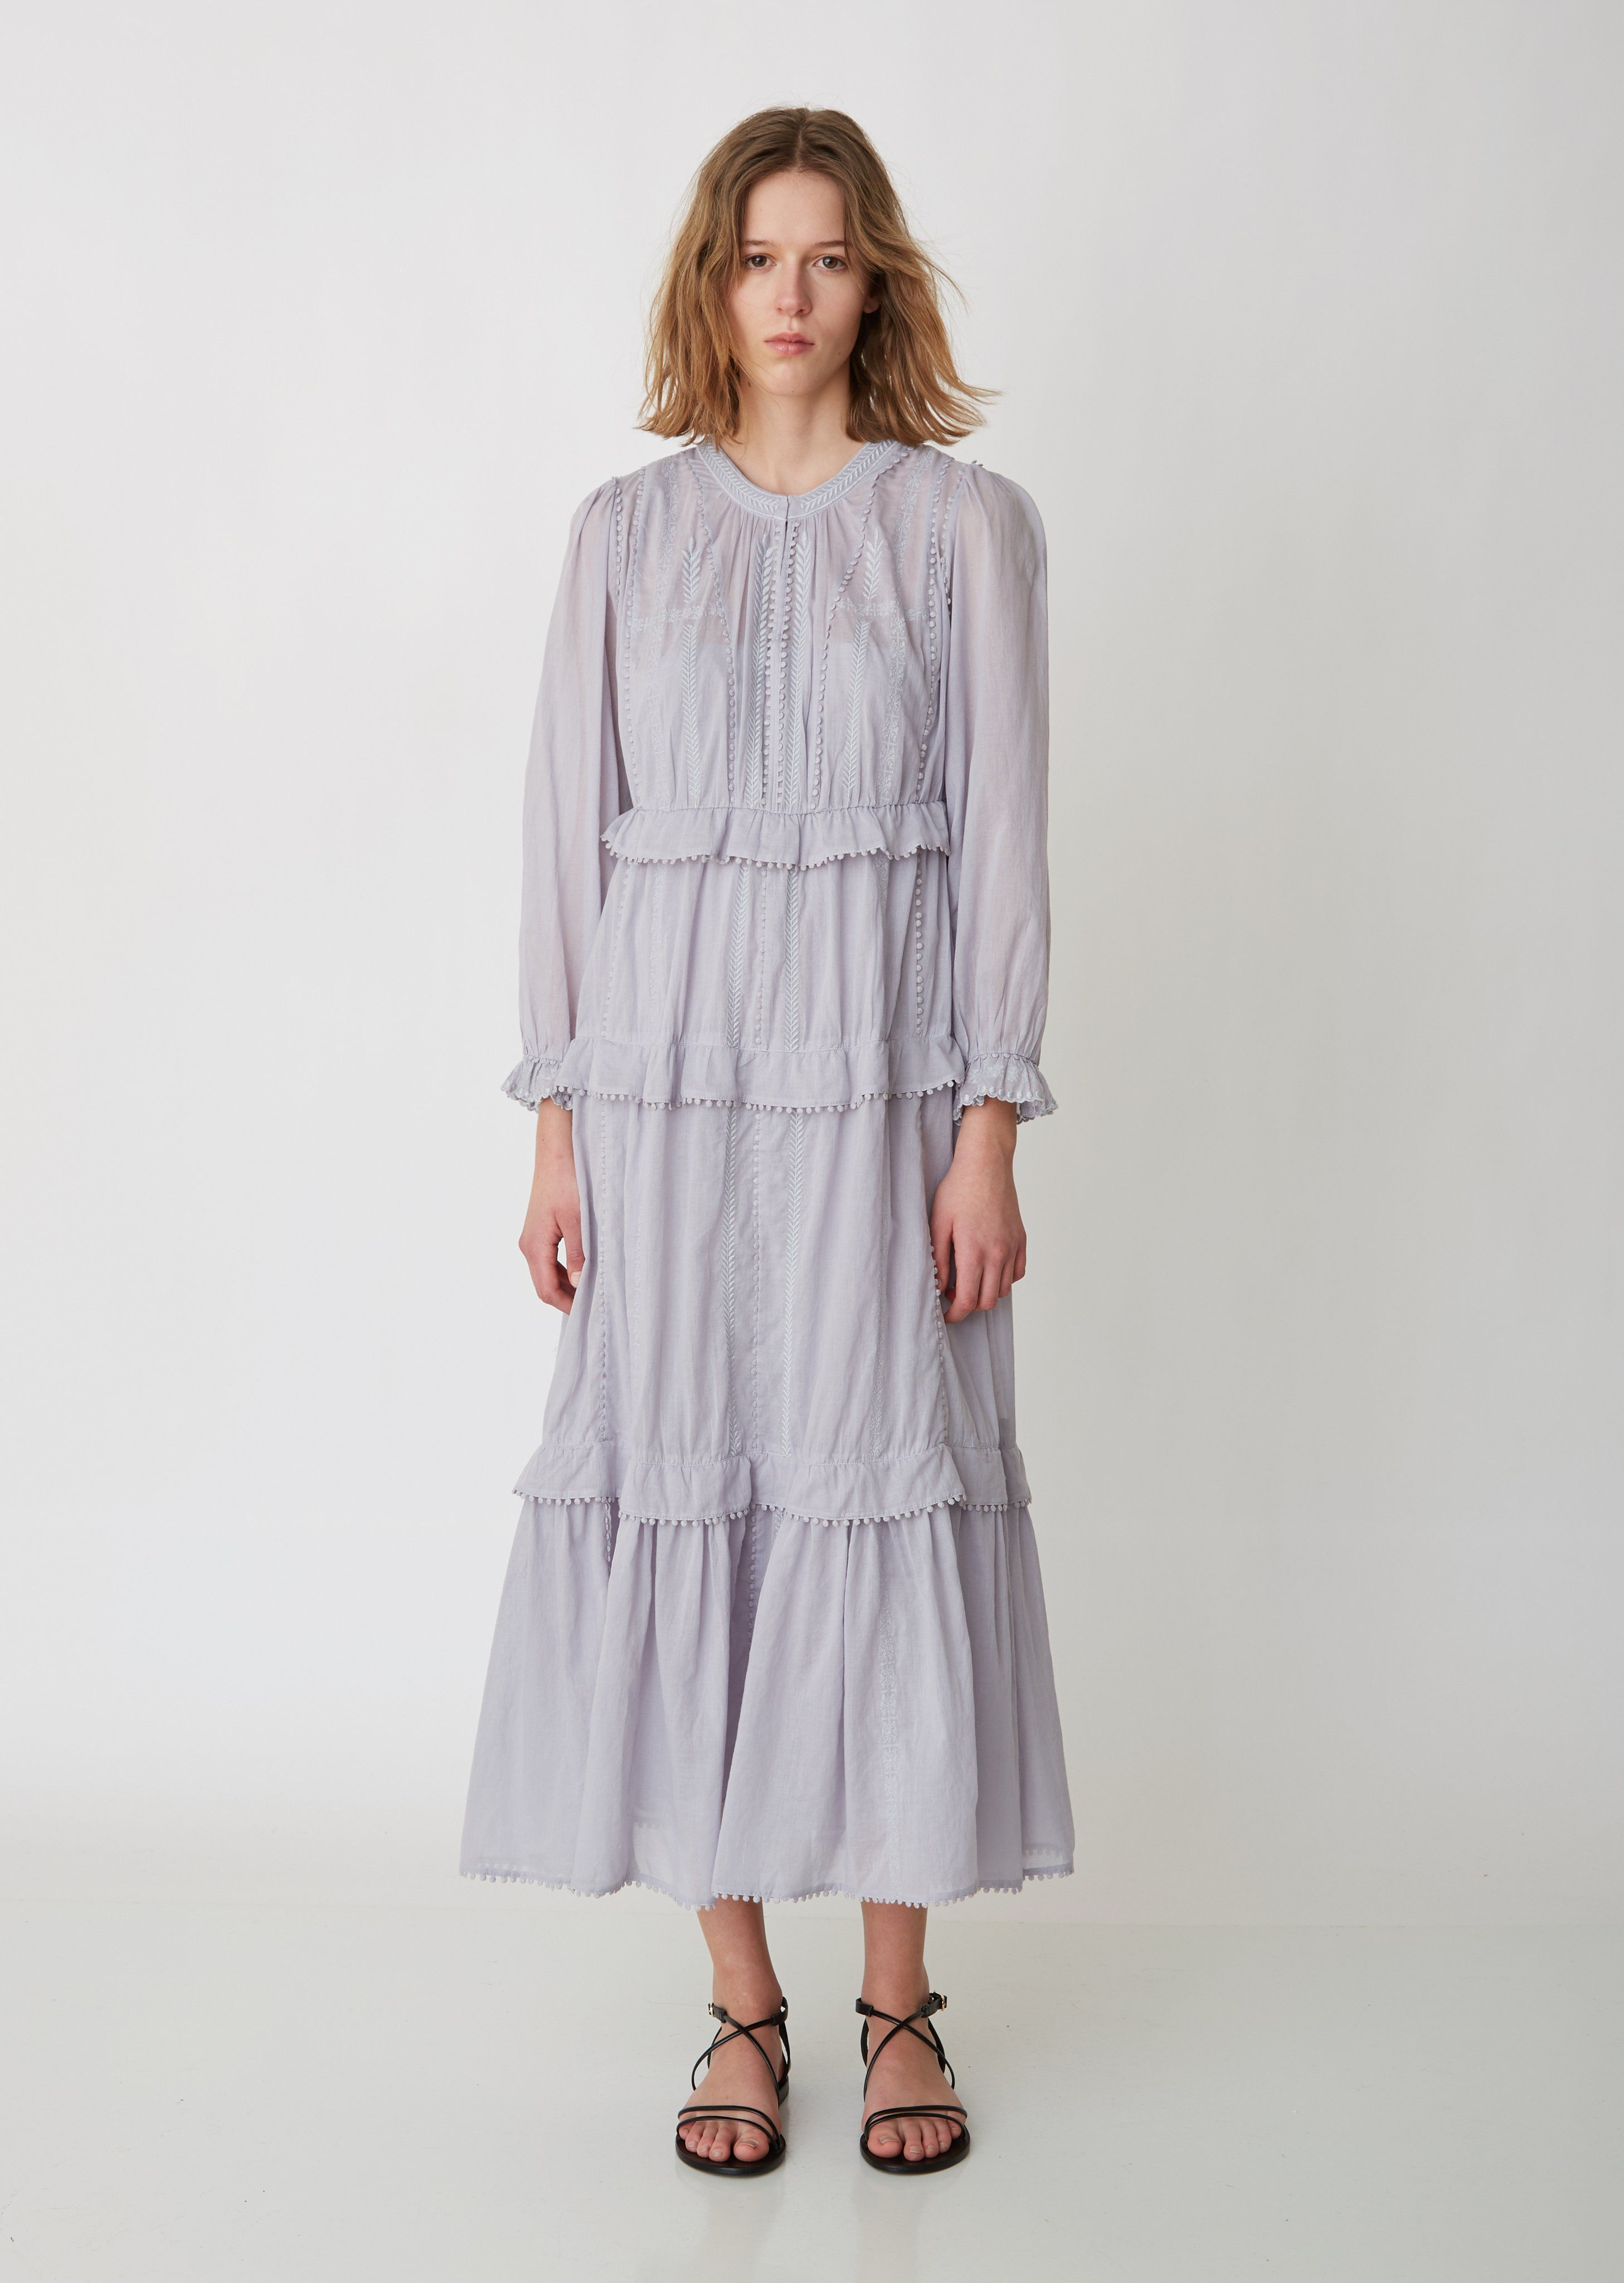 5584b02aa4c Aboni Cotton Voile Dress - FR 34 / Light in 2019 | Looks for spring &  summer | Dresses, How to wear, Cotton lights